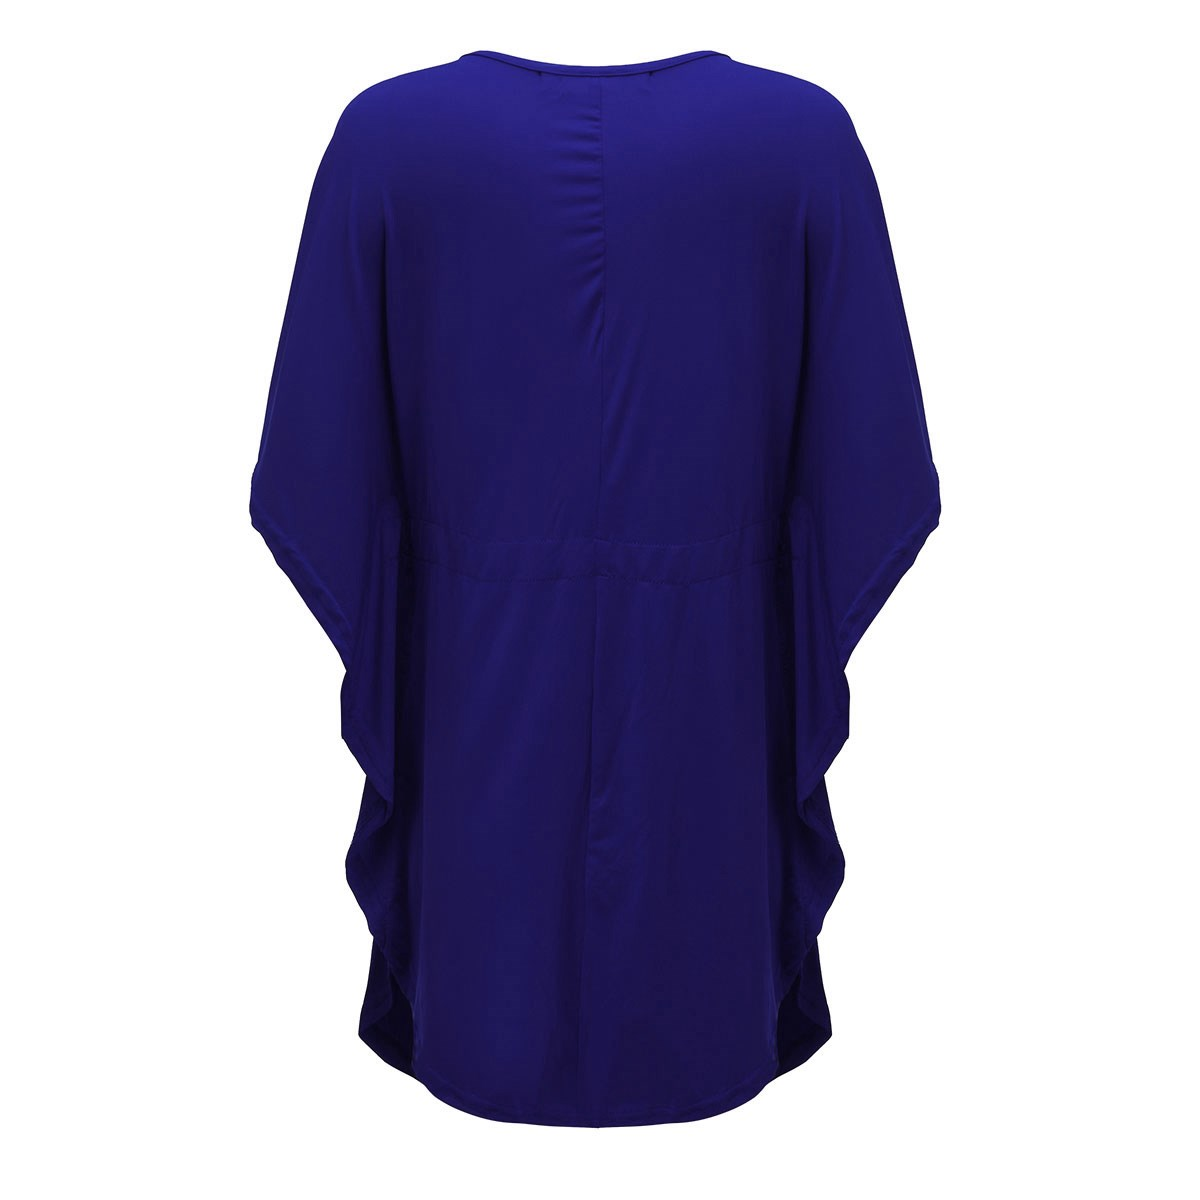 Sleeve Size Tops Blouses 15